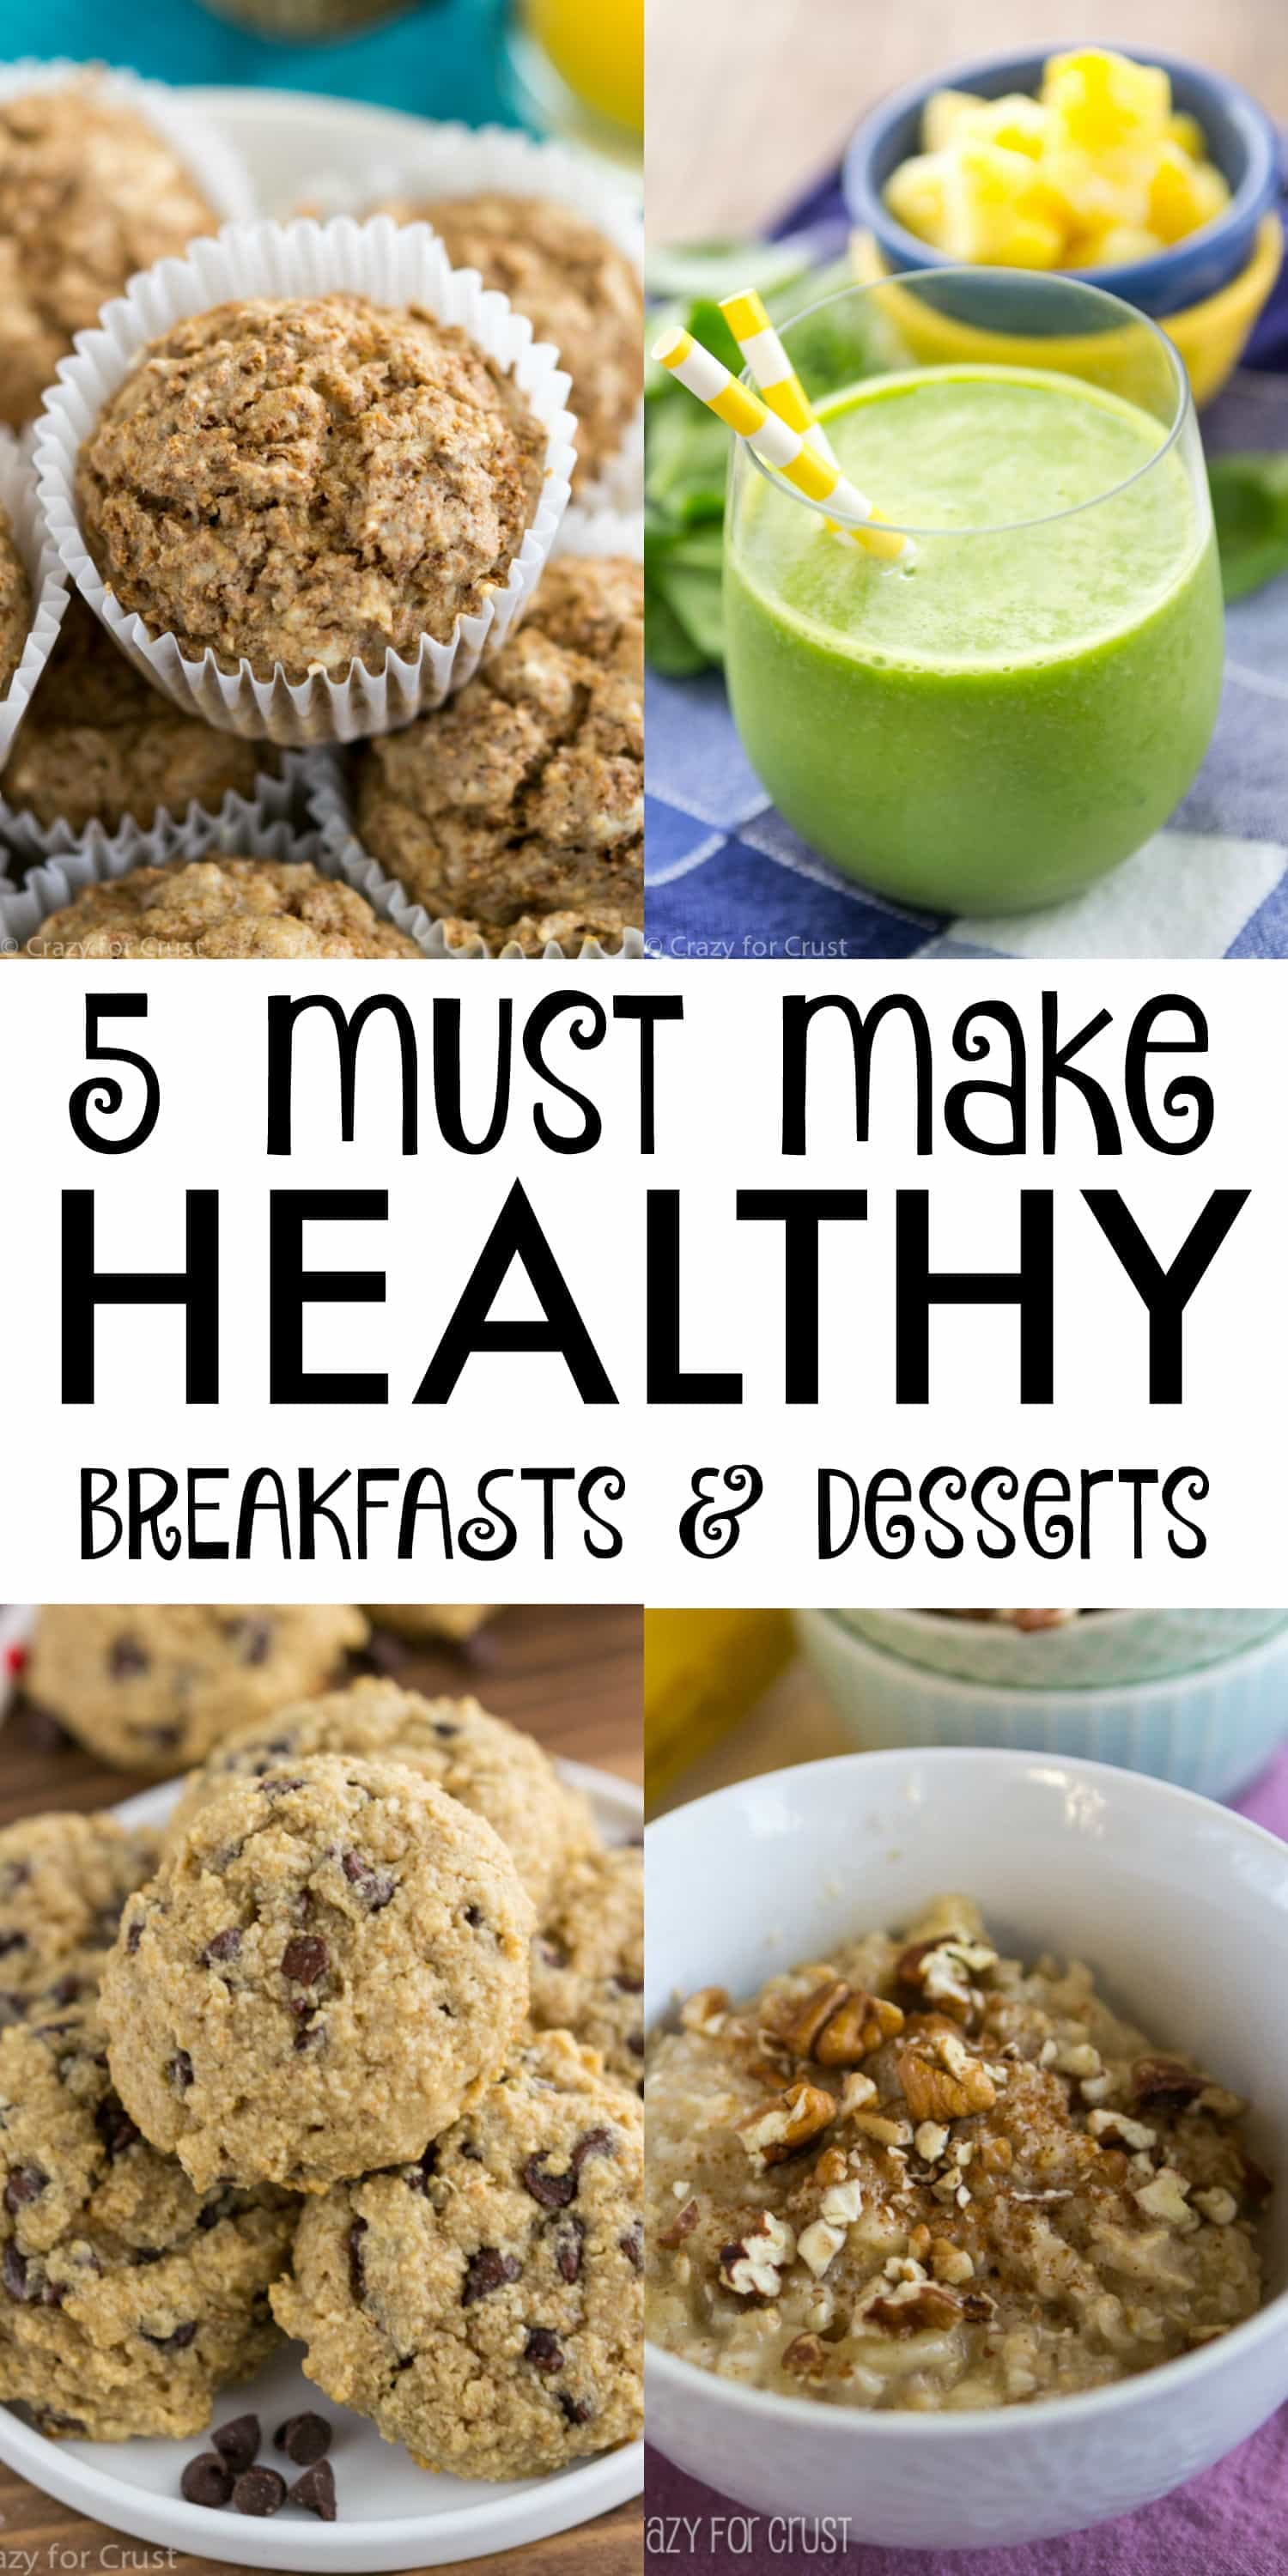 5 must make HEALTHY breakfast and dessert recipes